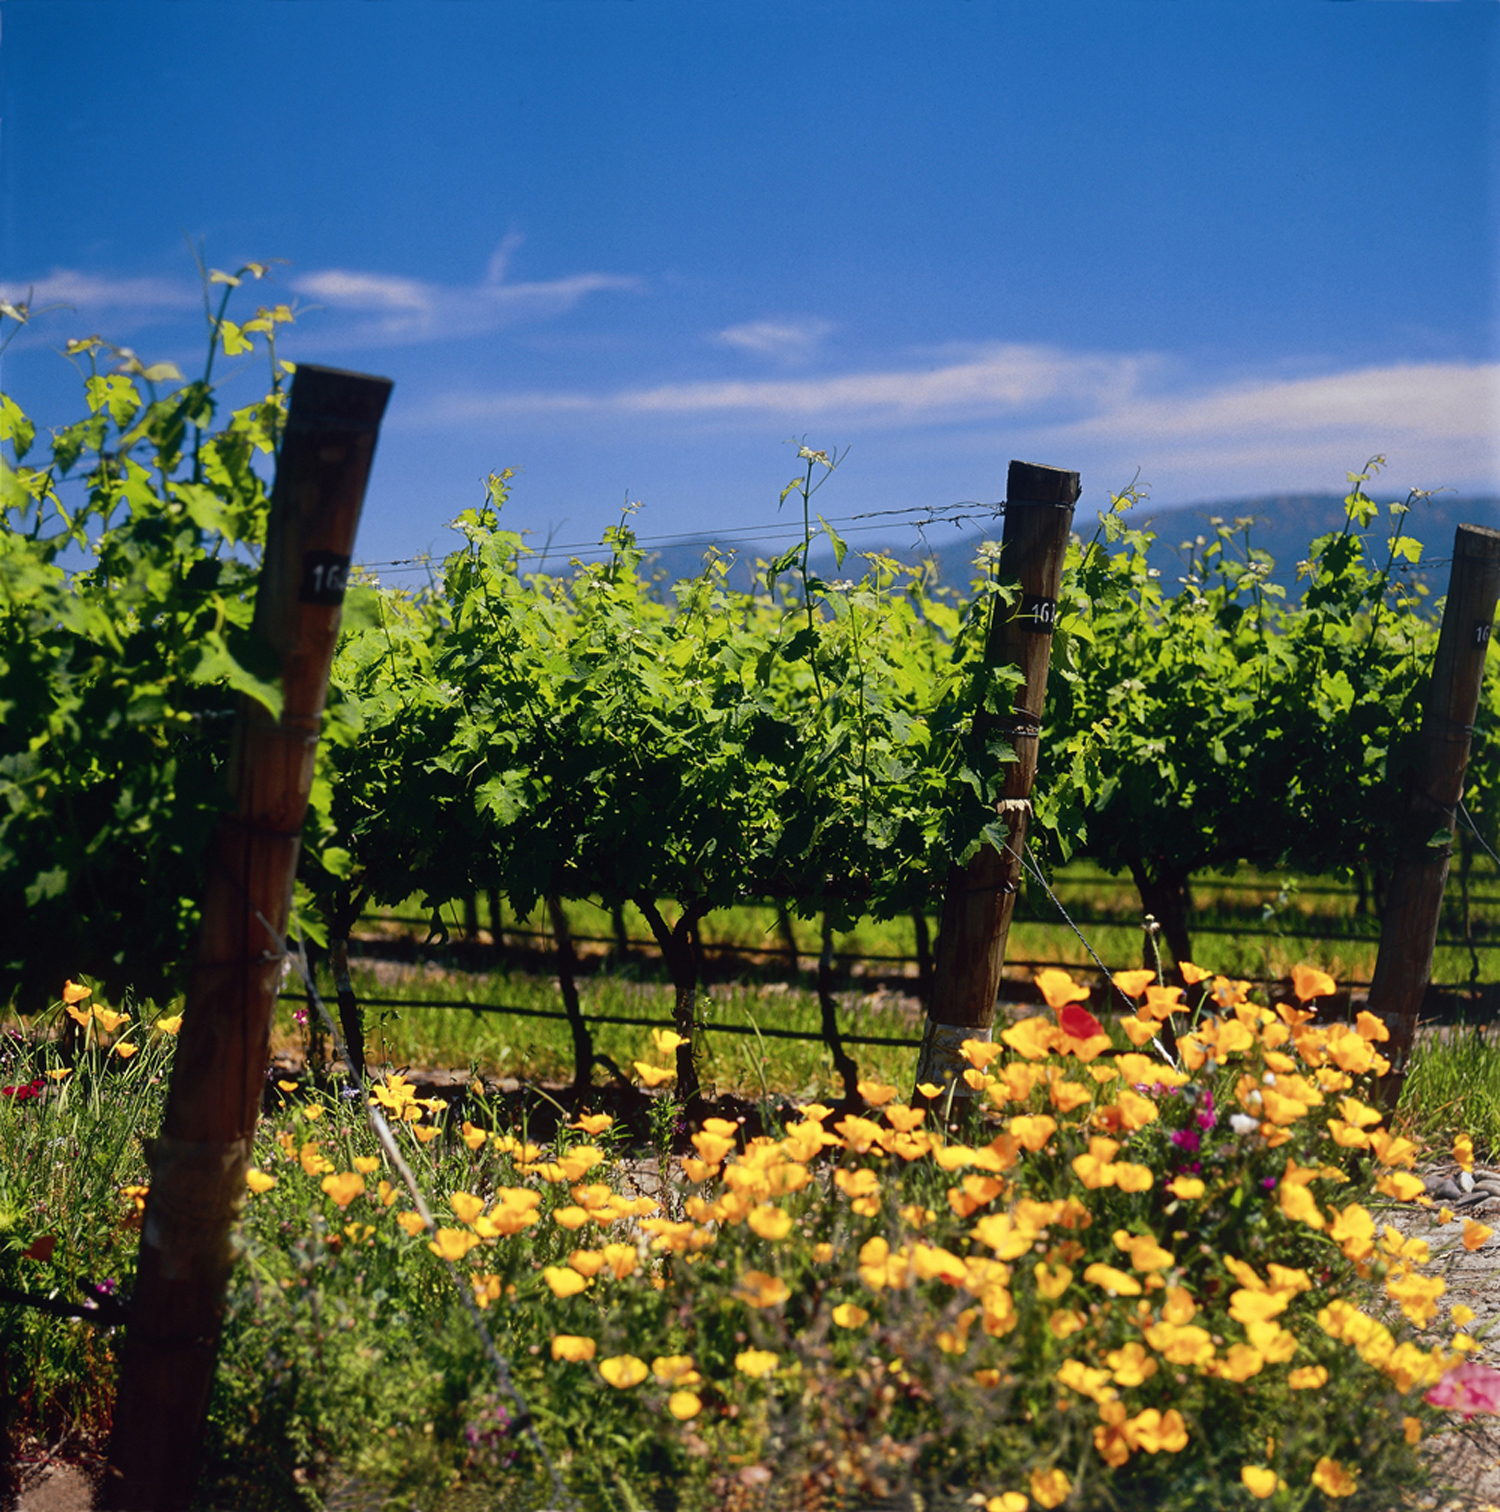 VineyardWithFlowers.jpg